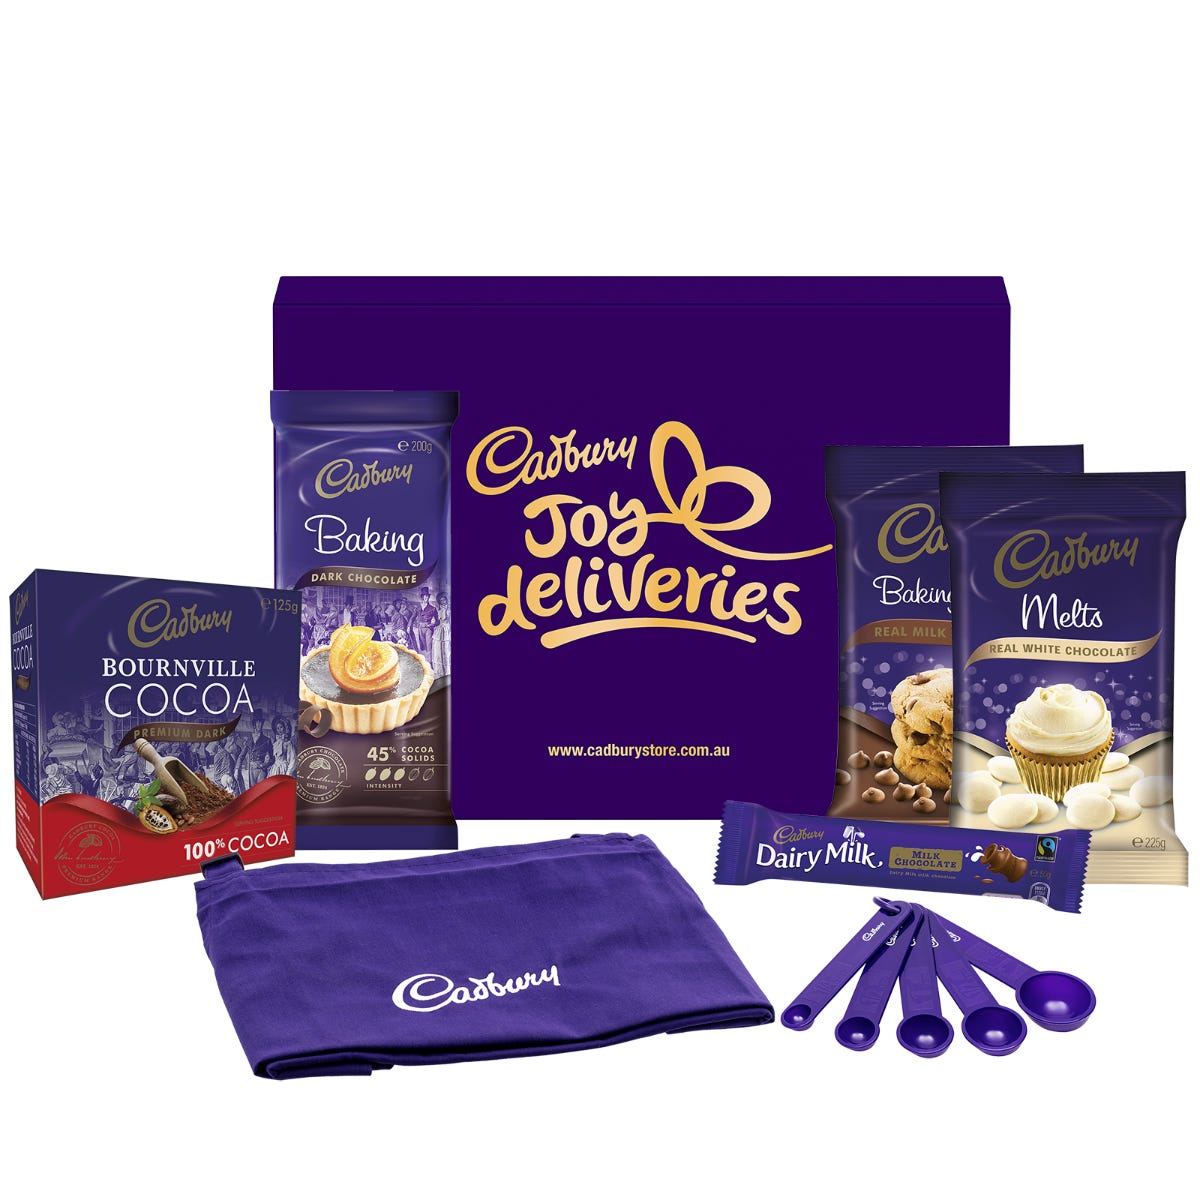 Cadbury Baking Gift Pack